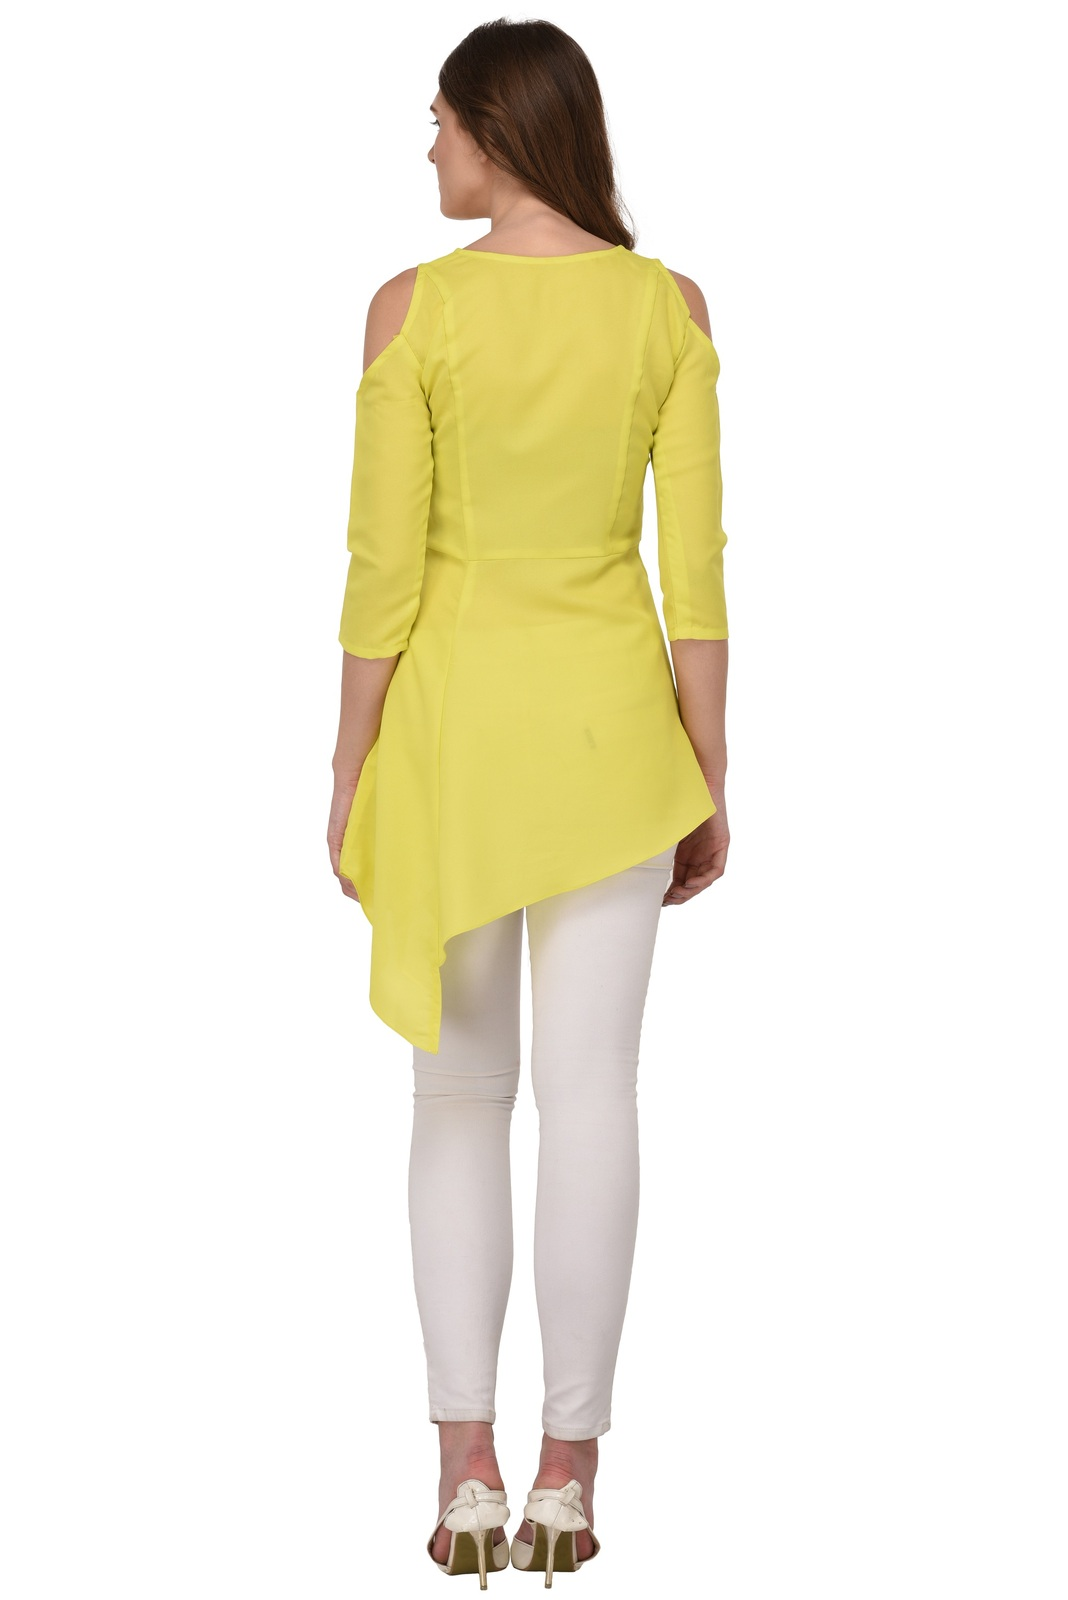 Tunics for women Moss Tunics Crepe Lime Green Cold Shoulder top Christmas gifts image 5